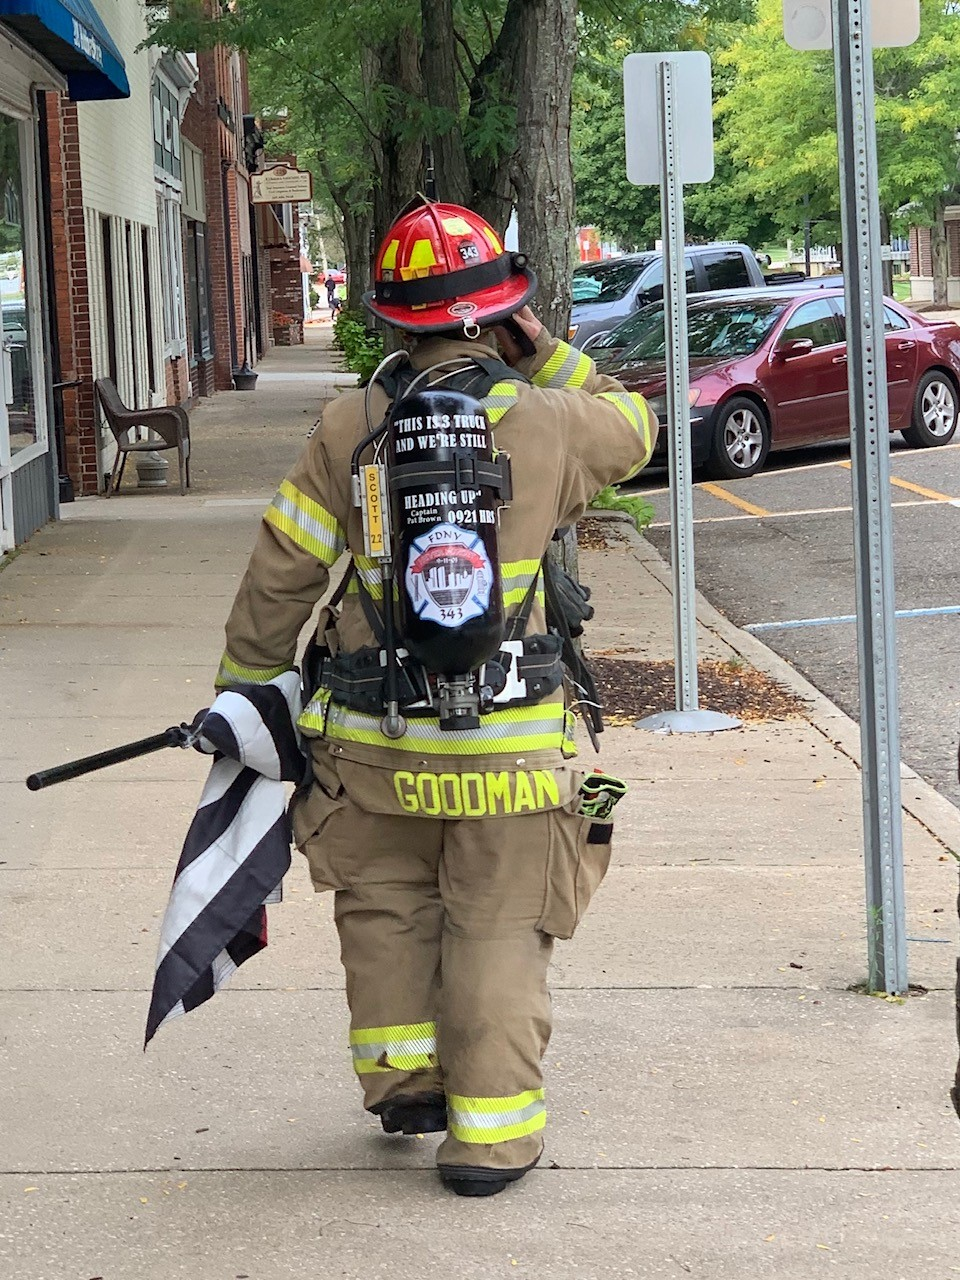 Allegan Fire Department Lieutenant Chris Goodman walking the streets on September 11, 2020. Wearing a tank with the names of one of the 343 firefighters that died on September 11, 2001. (WWMT/Felicia Belden)